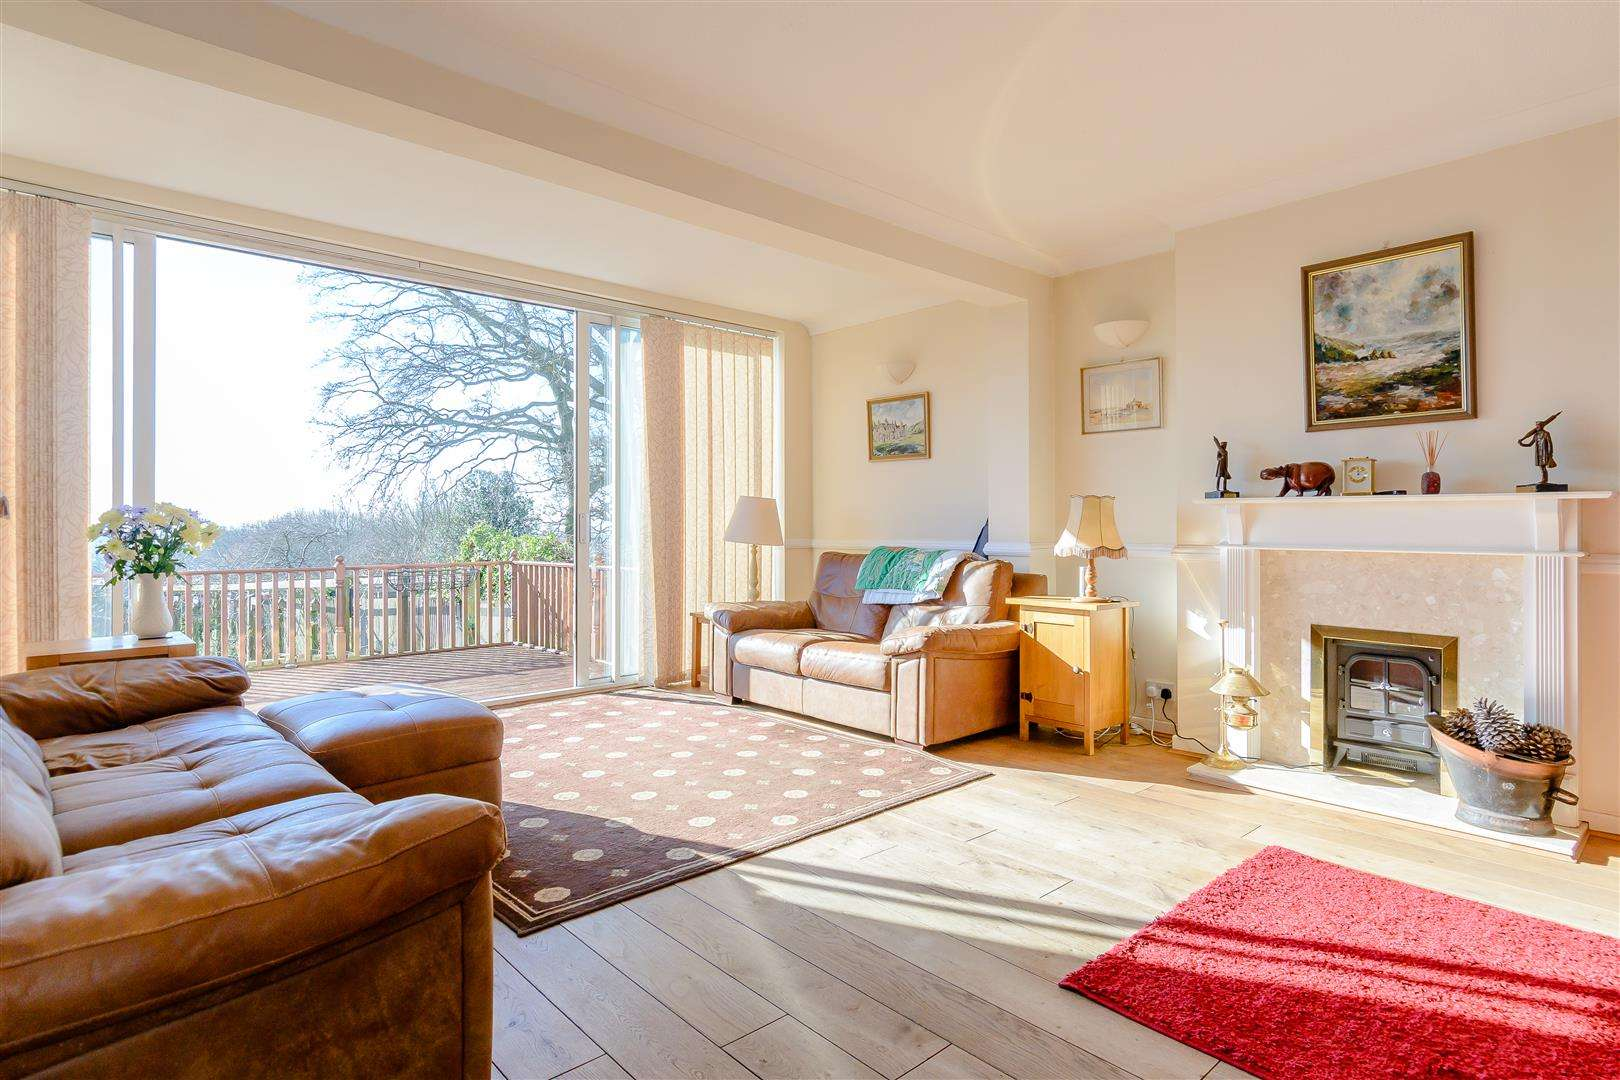 4 bed for sale in Merry Hill Road, Bushey - (Property Image 1)